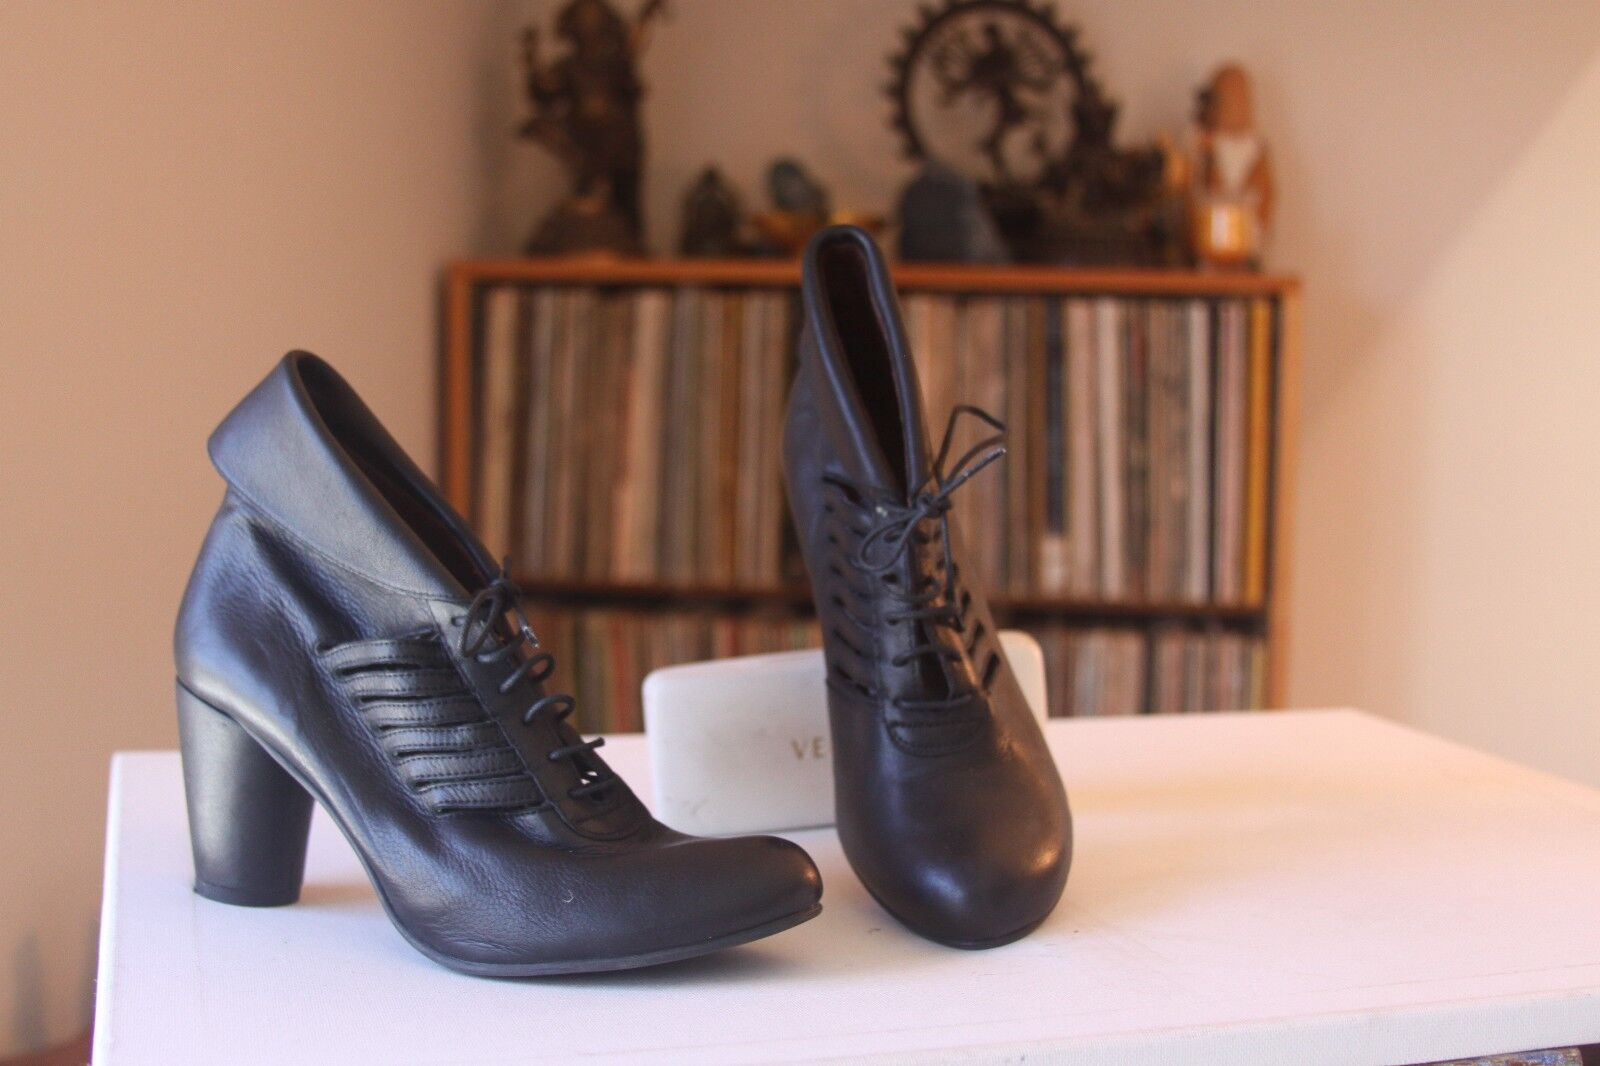 Jon Josef Black Leather 3 Inch Heel Lace Up Booties Pumps SZ 8 M Made In Mgoldcco